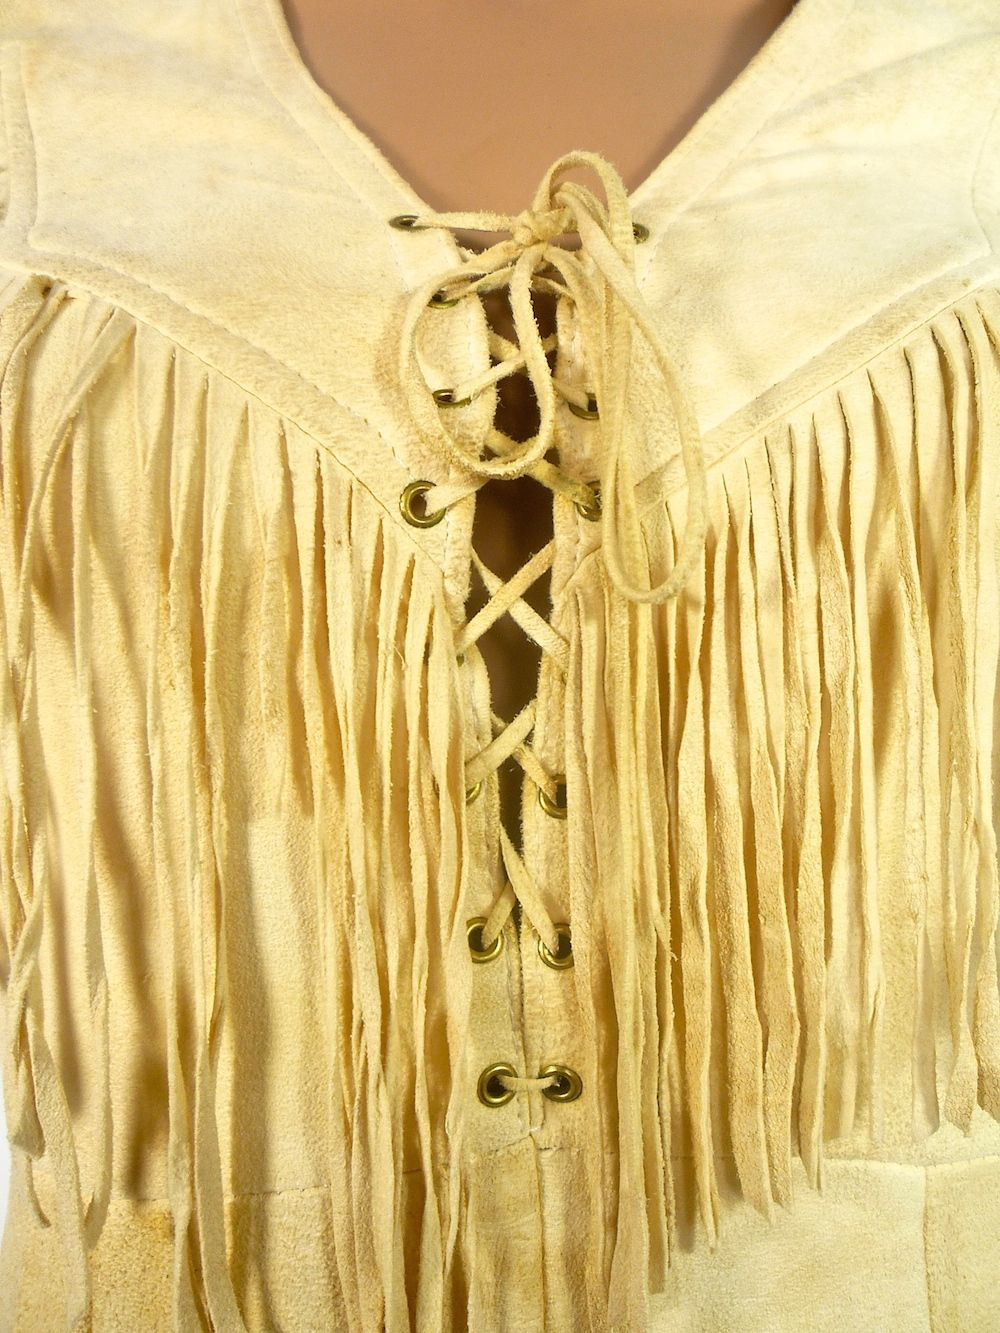 http://www.huzzarhuzzar.com/collections/all-products/products/amazing-suede-chamois-leather-fringe-tassel-midi-dress